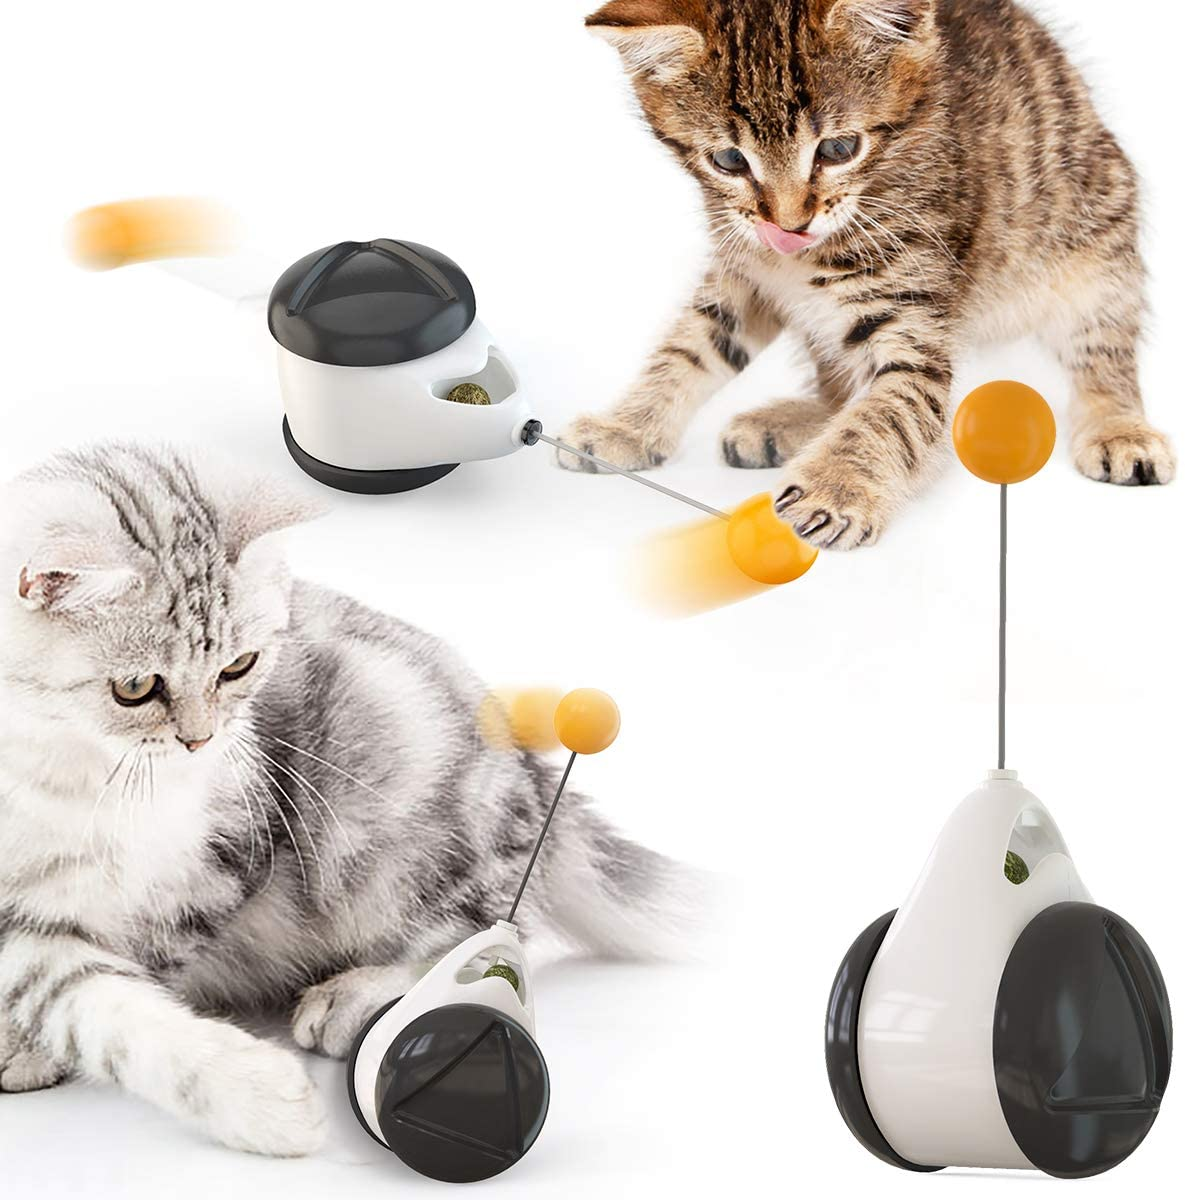 WY Shop Interactive Cat Chaser Toys Catnip Ball Toy, Balanced Cat Toys with Ball, Chasing Toy for Indoor Cats, Interactive Kitten Swing Toy